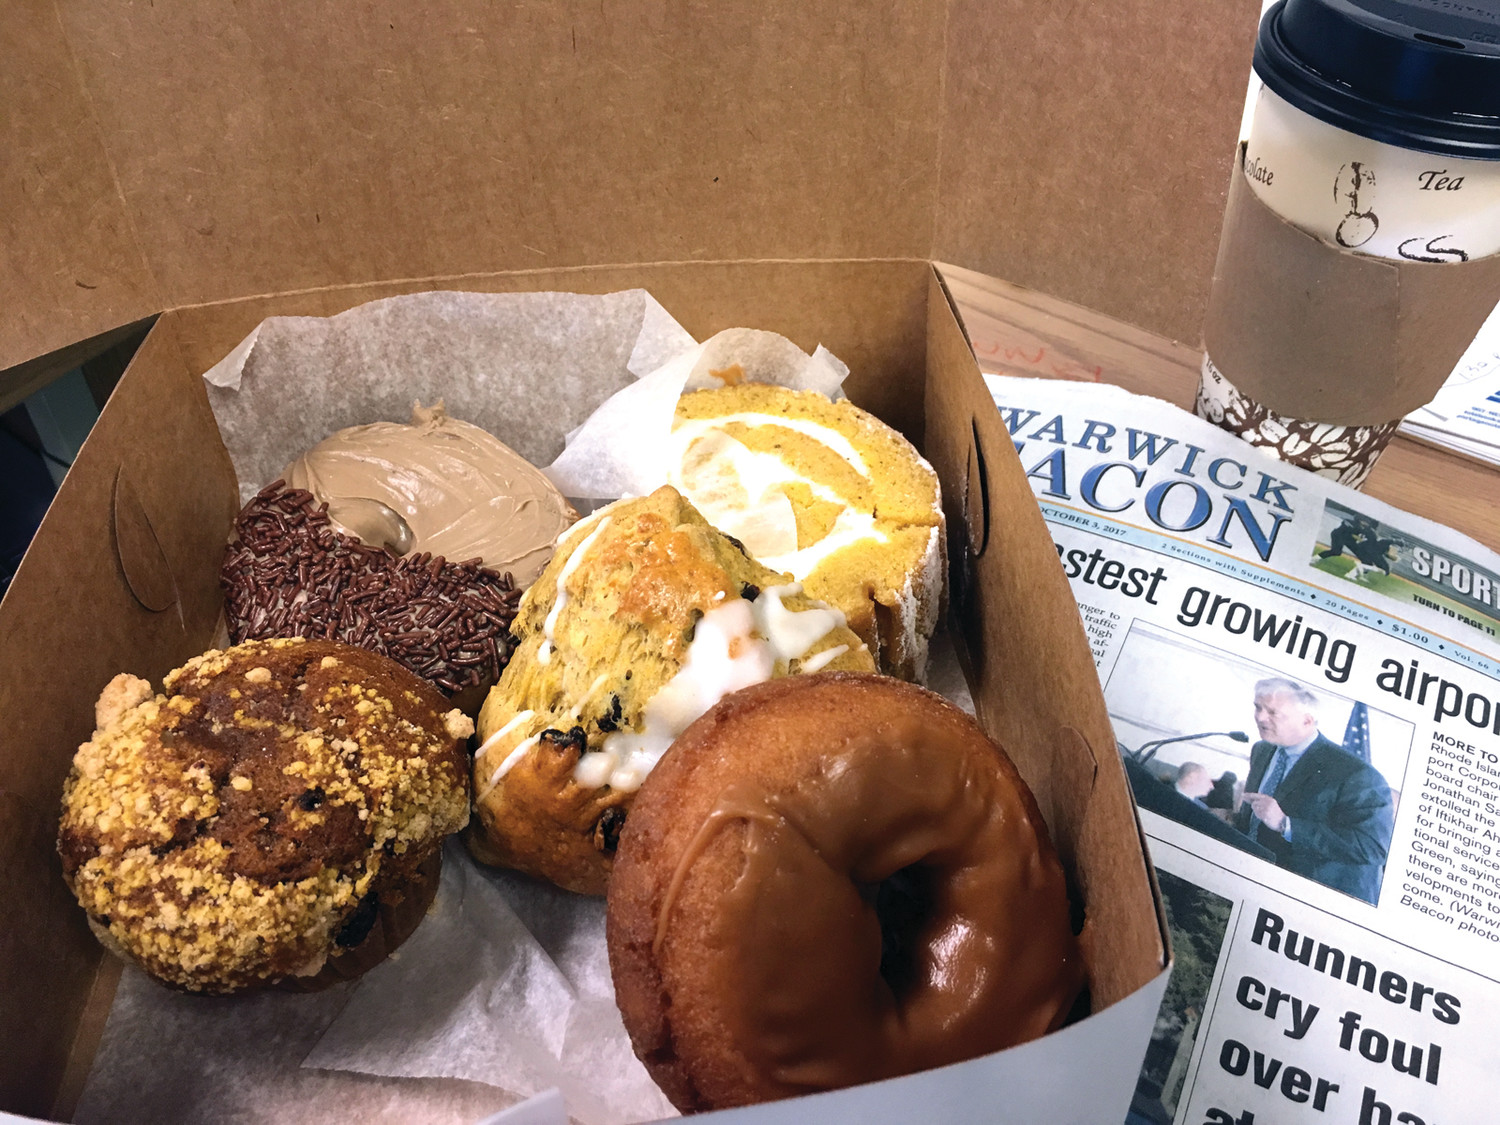 A sampling of delectable fall-inspired treats from Le Favorite in Warwick included a delightful maple/walnut muffin, a pumpkin scone, pumpkin spice sponge cake and a salted caramel-topped cider doughnut.